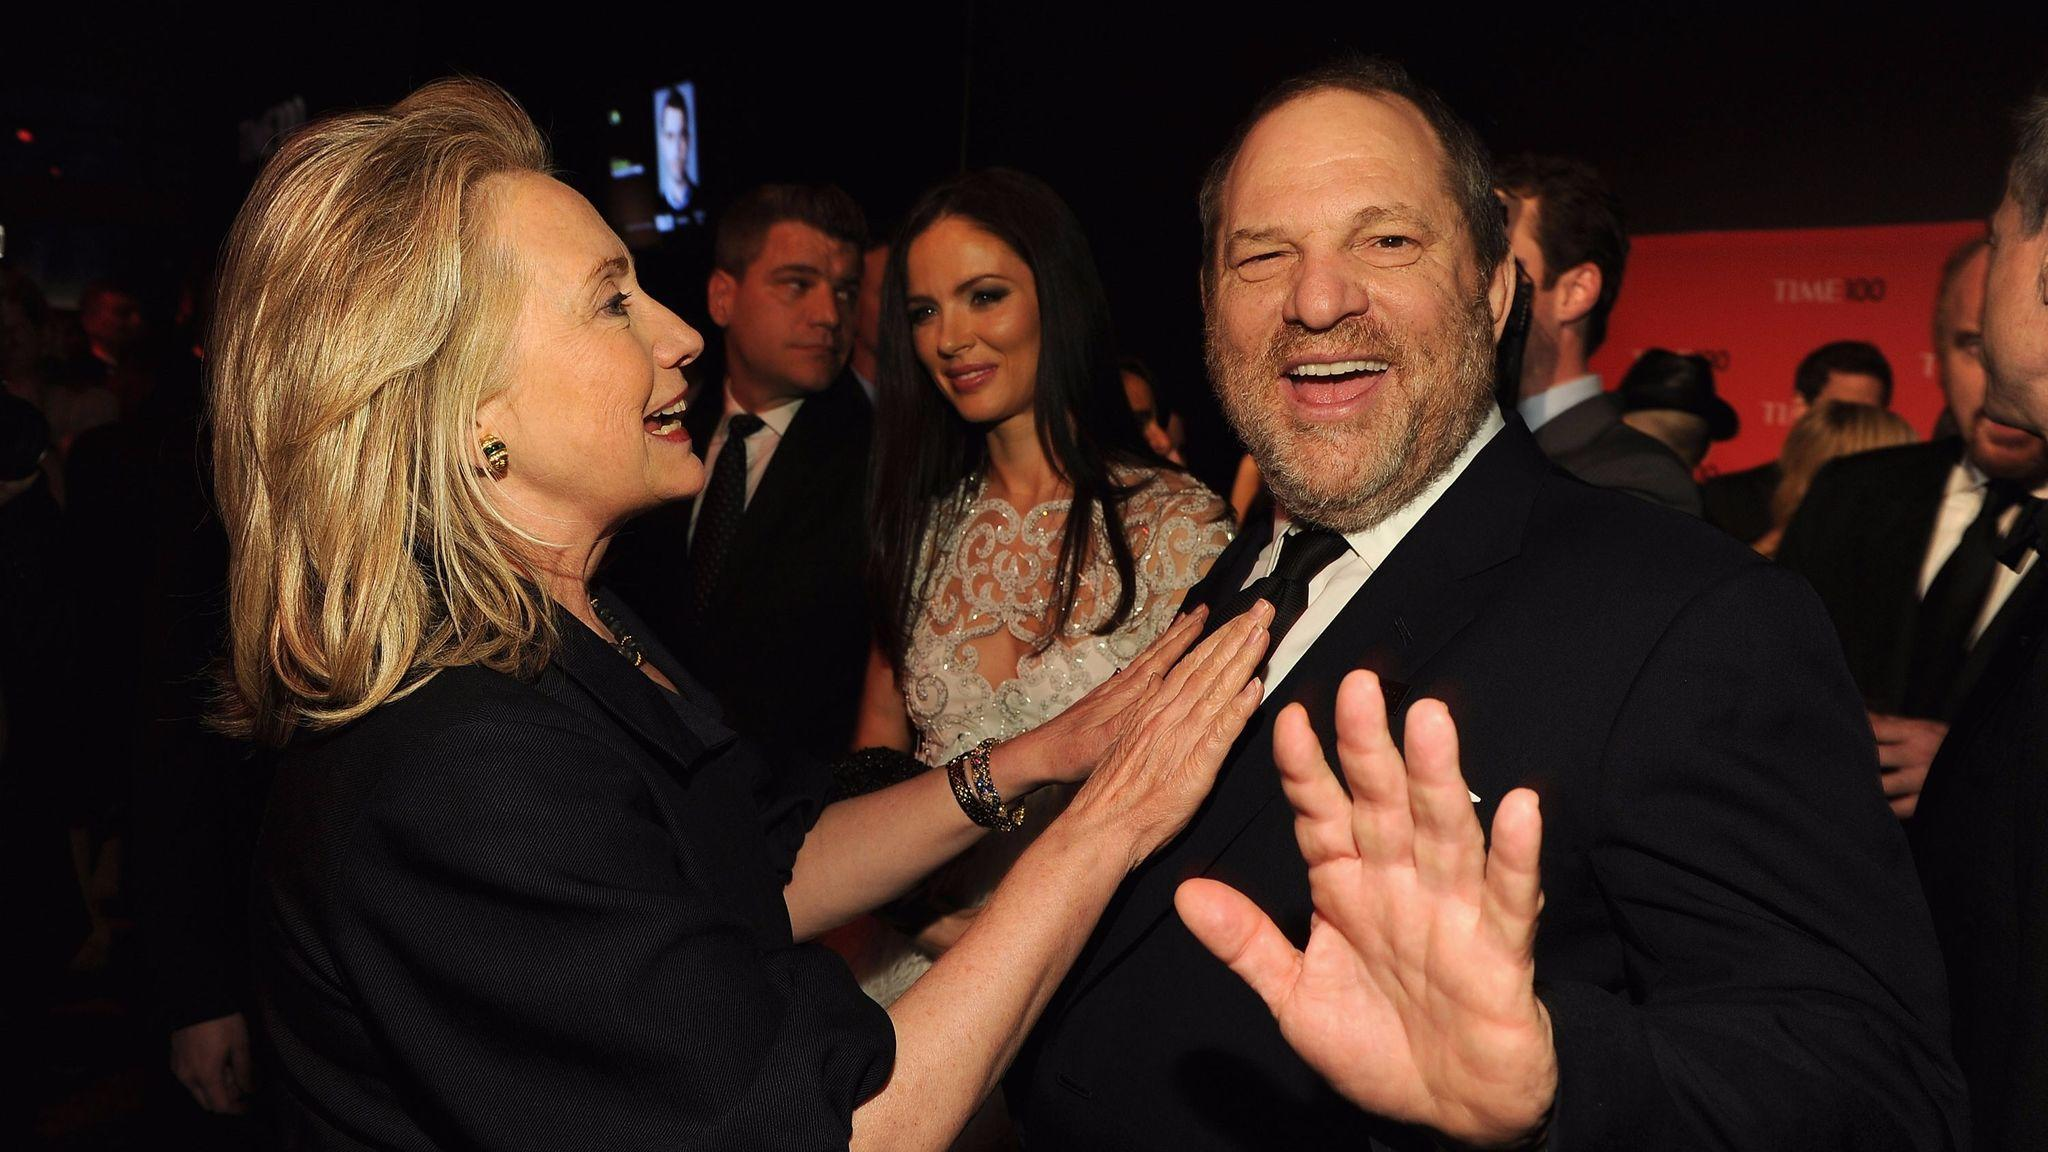 Hillary Clinton and producer Harvey Weinstein at a gala in New York in 2012. (Larry Busacca / Getty Images for Time)